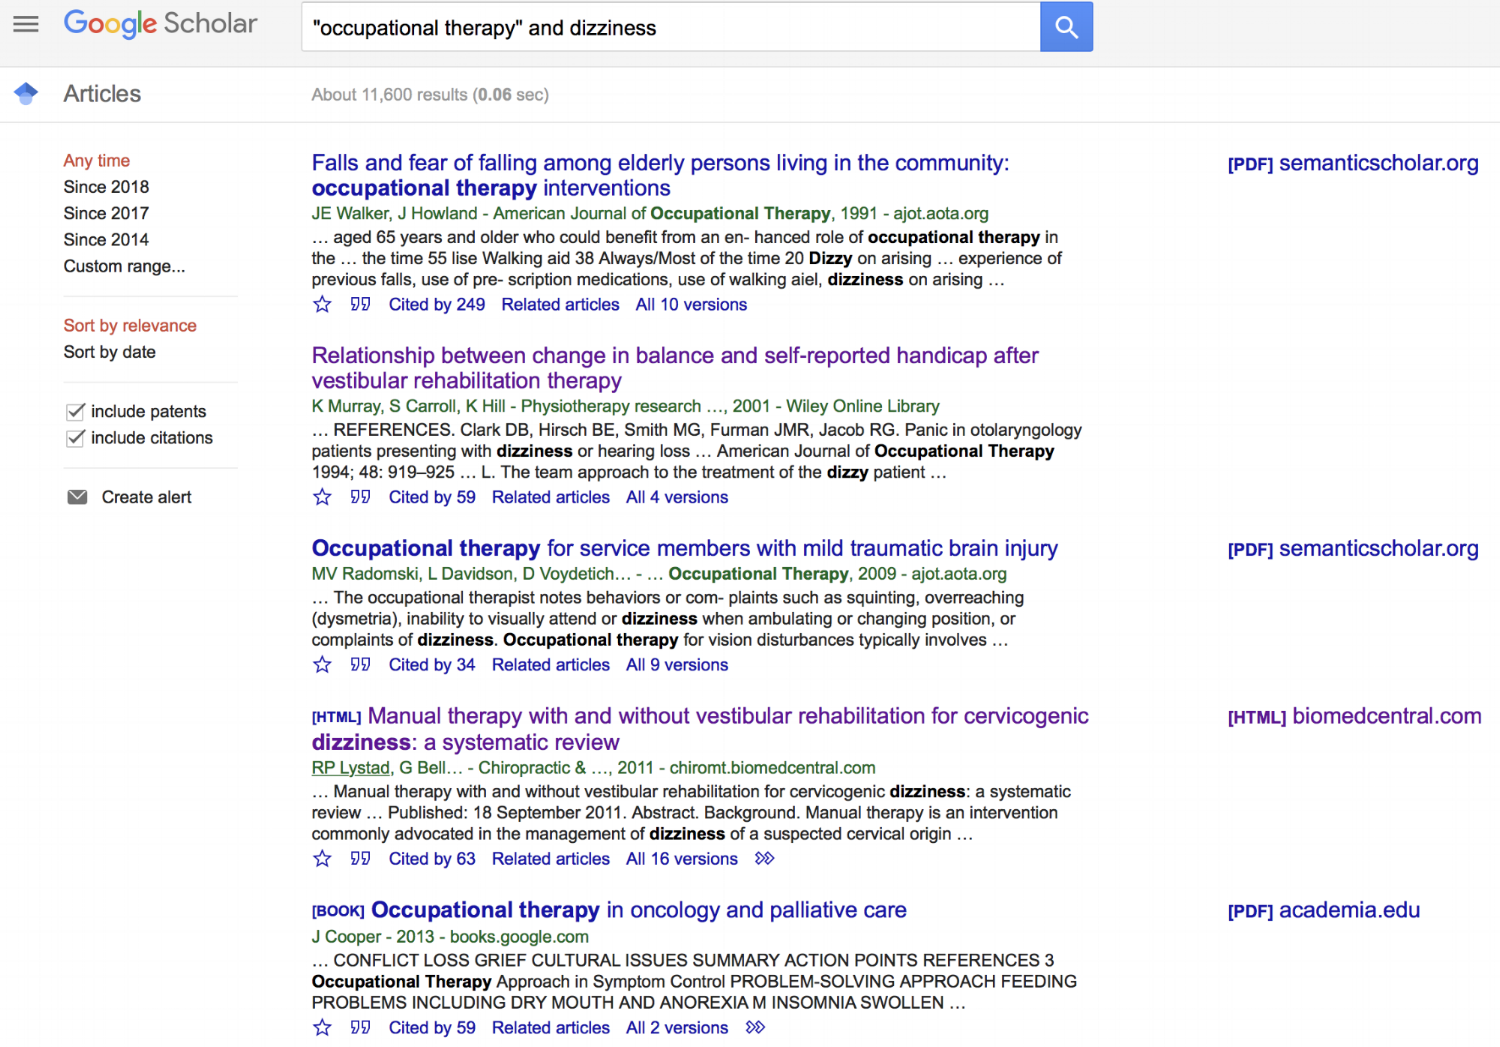 Here's an example of the what Google Scholar pulls when you search for Occupational Therapy and Dizzinesss.